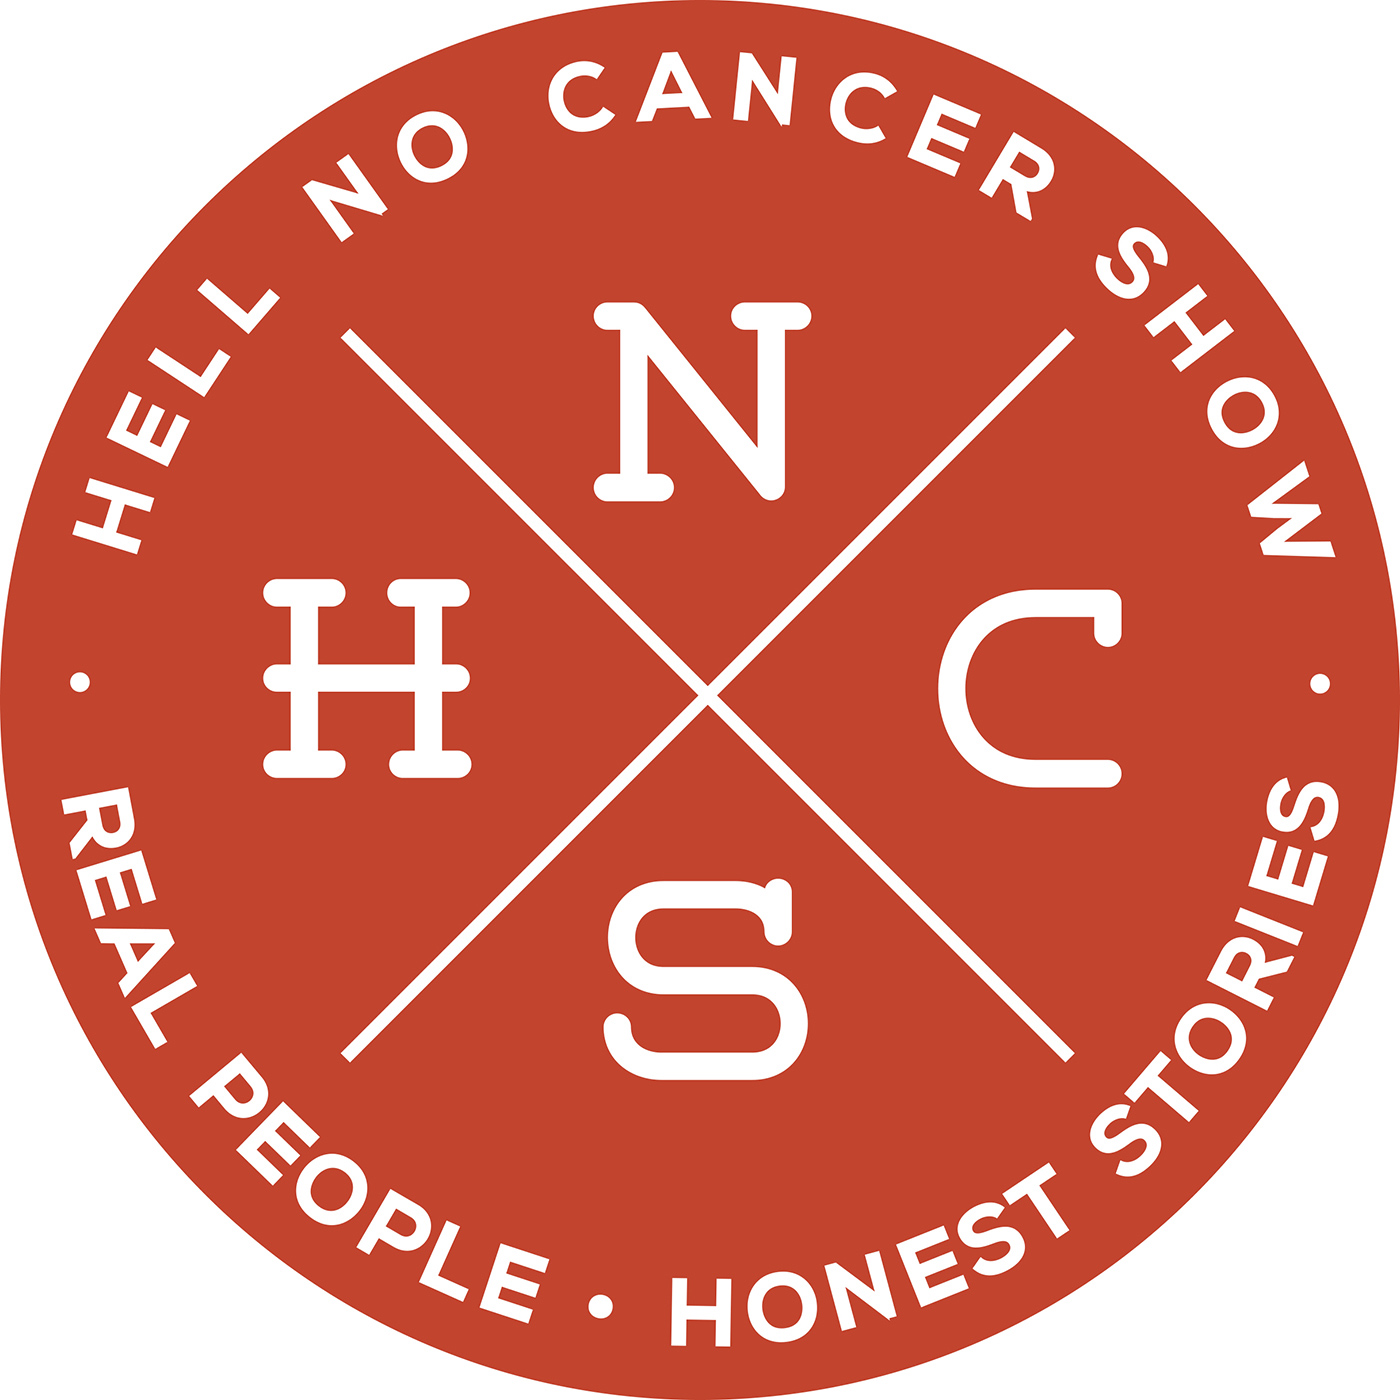 Hell No Cancer Show | Real People. Honest Stories.